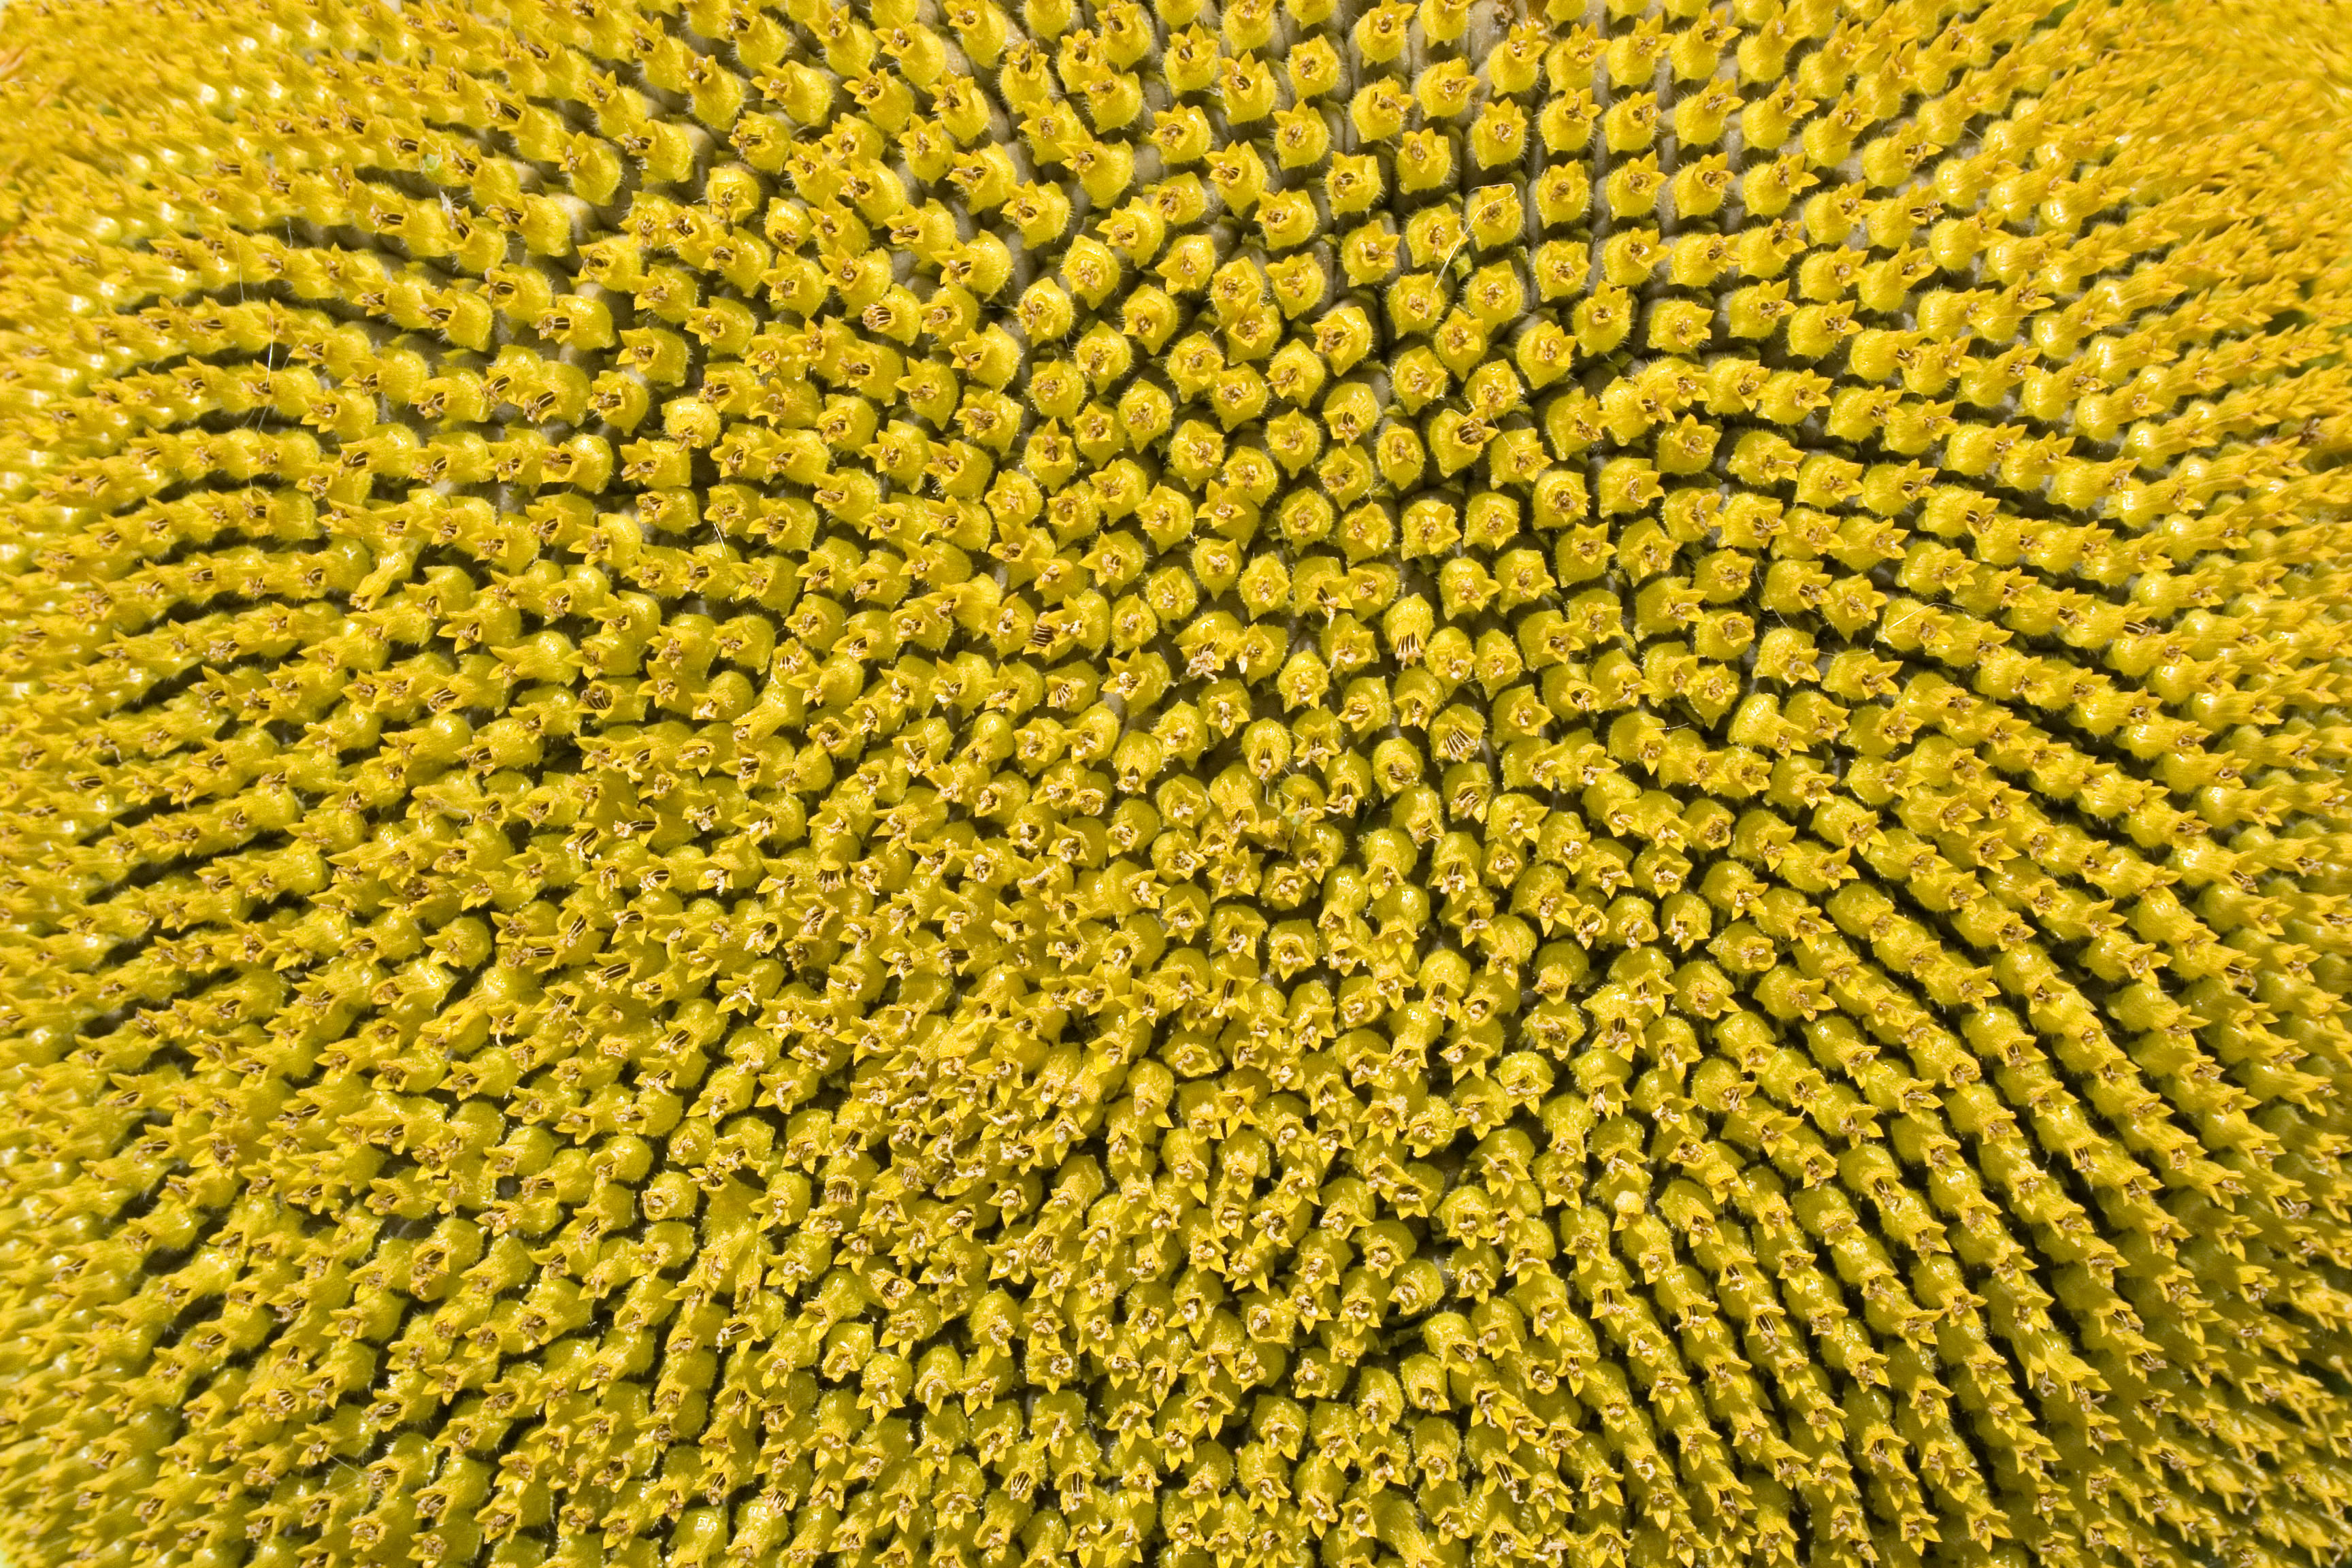 Sunflower head (Helianthus annuus) Hungary Felsotold